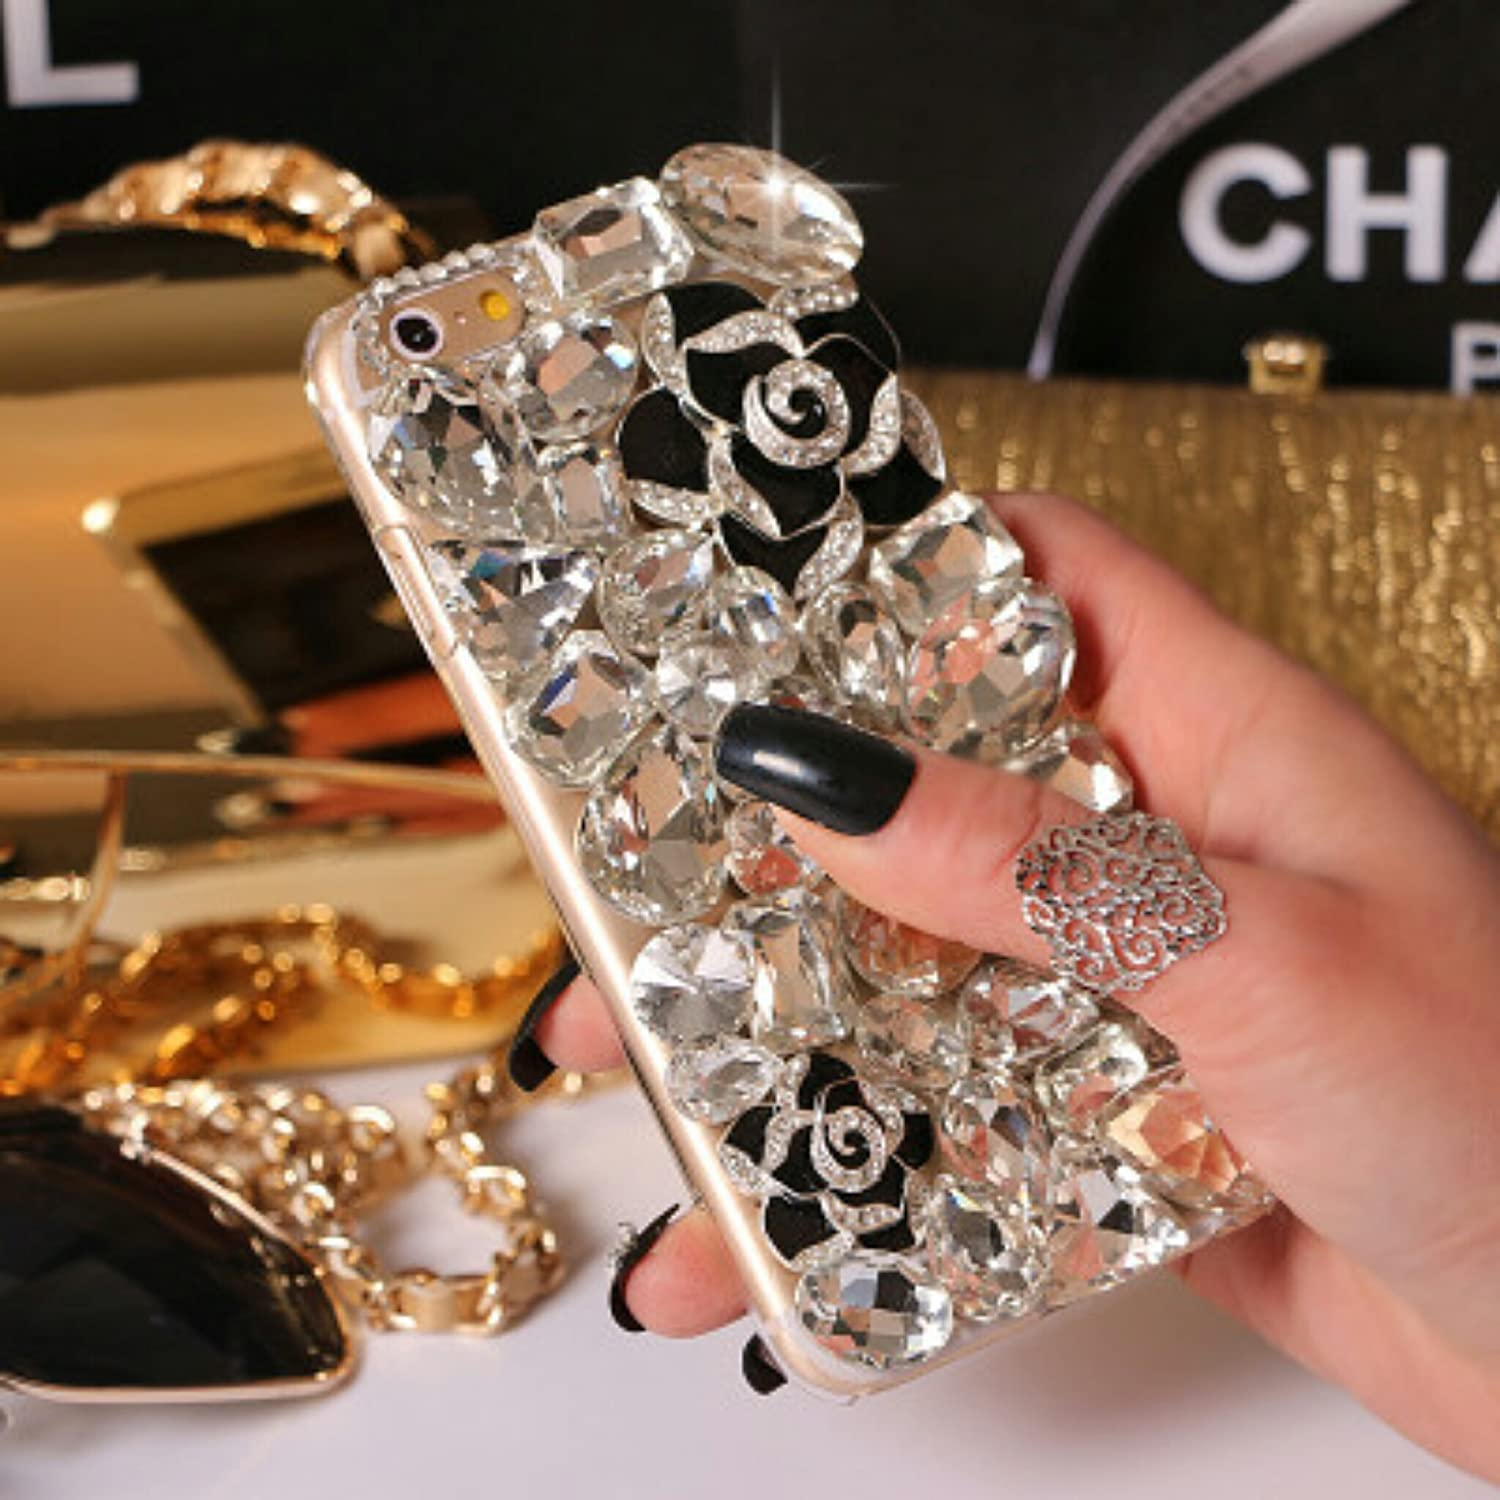 Crystal_phonecase Luxury 3D Bling Handmade Jewelled Pearl Crystals Diamond Clear Case Cover for Samsung Galaxy S4 S5 S6 S6Edge S7 S7Edge S8 S8Plus (Black Flower & Crystal, Samsung Galaxy S8)